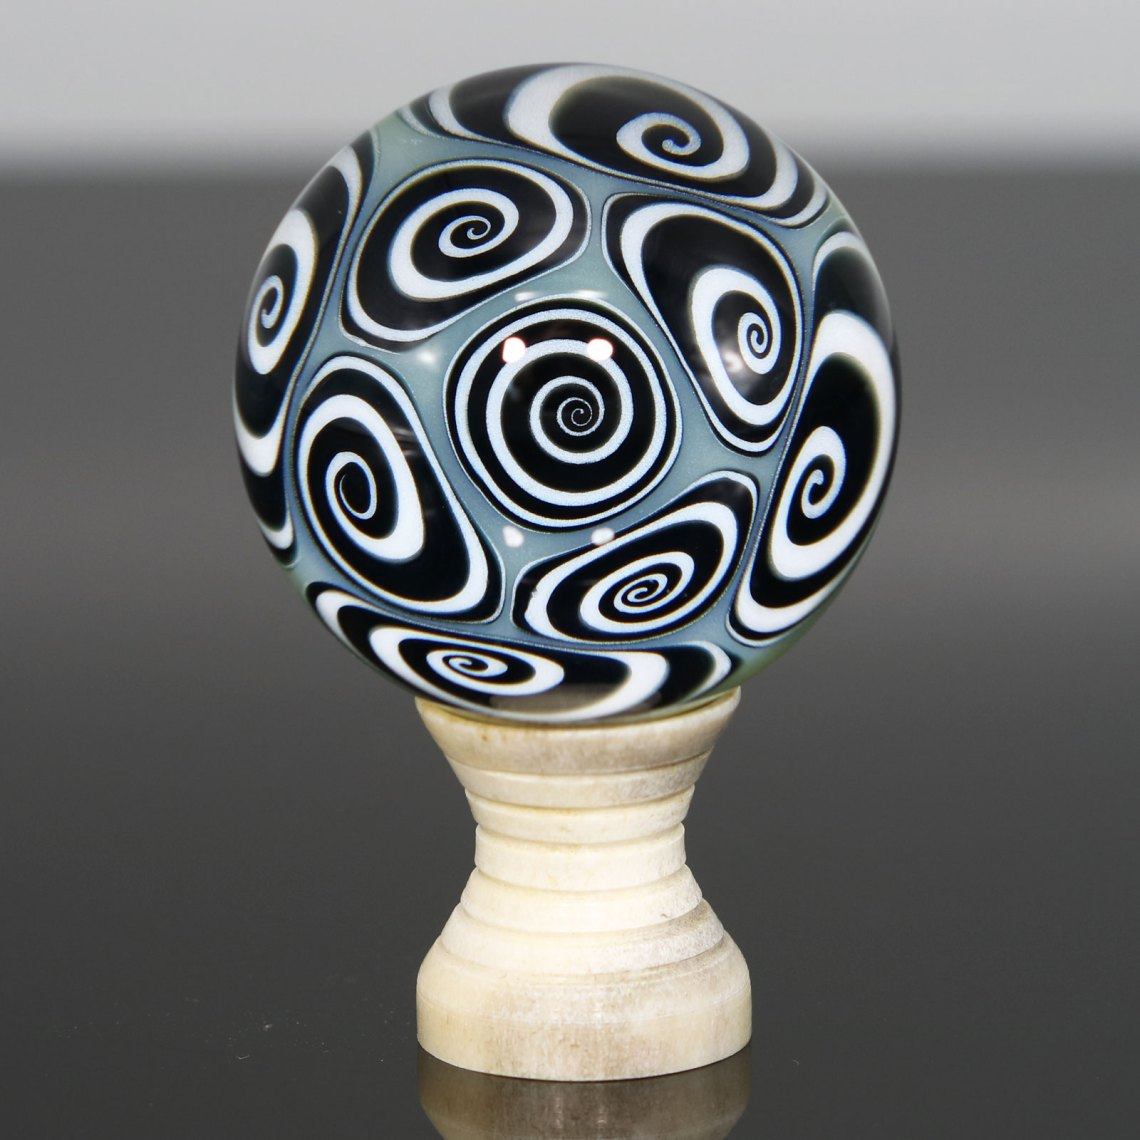 Kaja Glass – Green Microspiral Marble